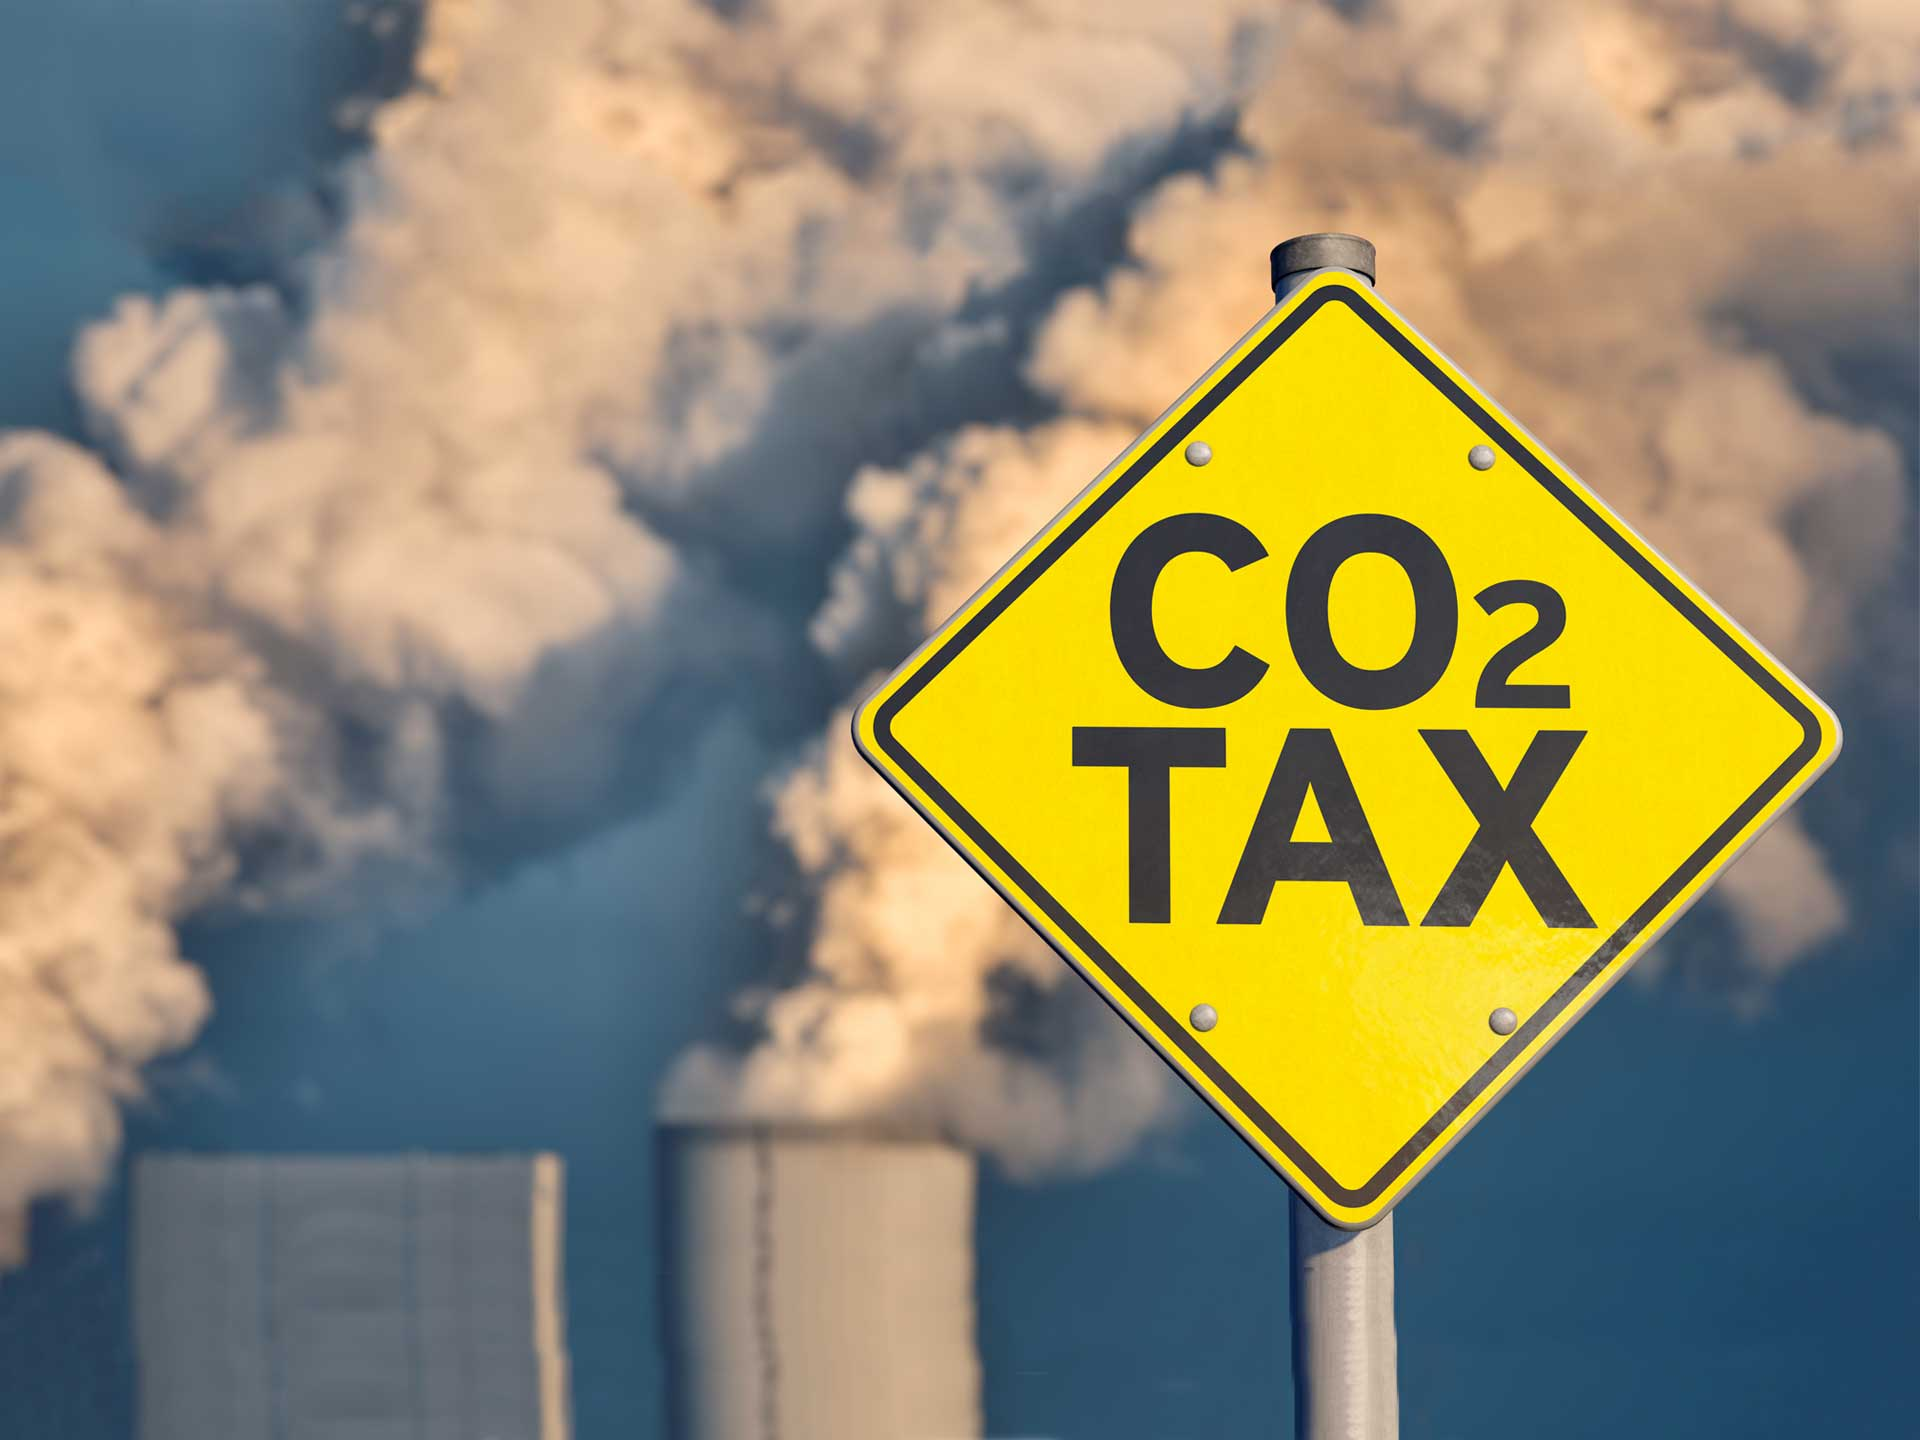 Kerry says that the US plans to introduce carbon border tax after analysing the risks